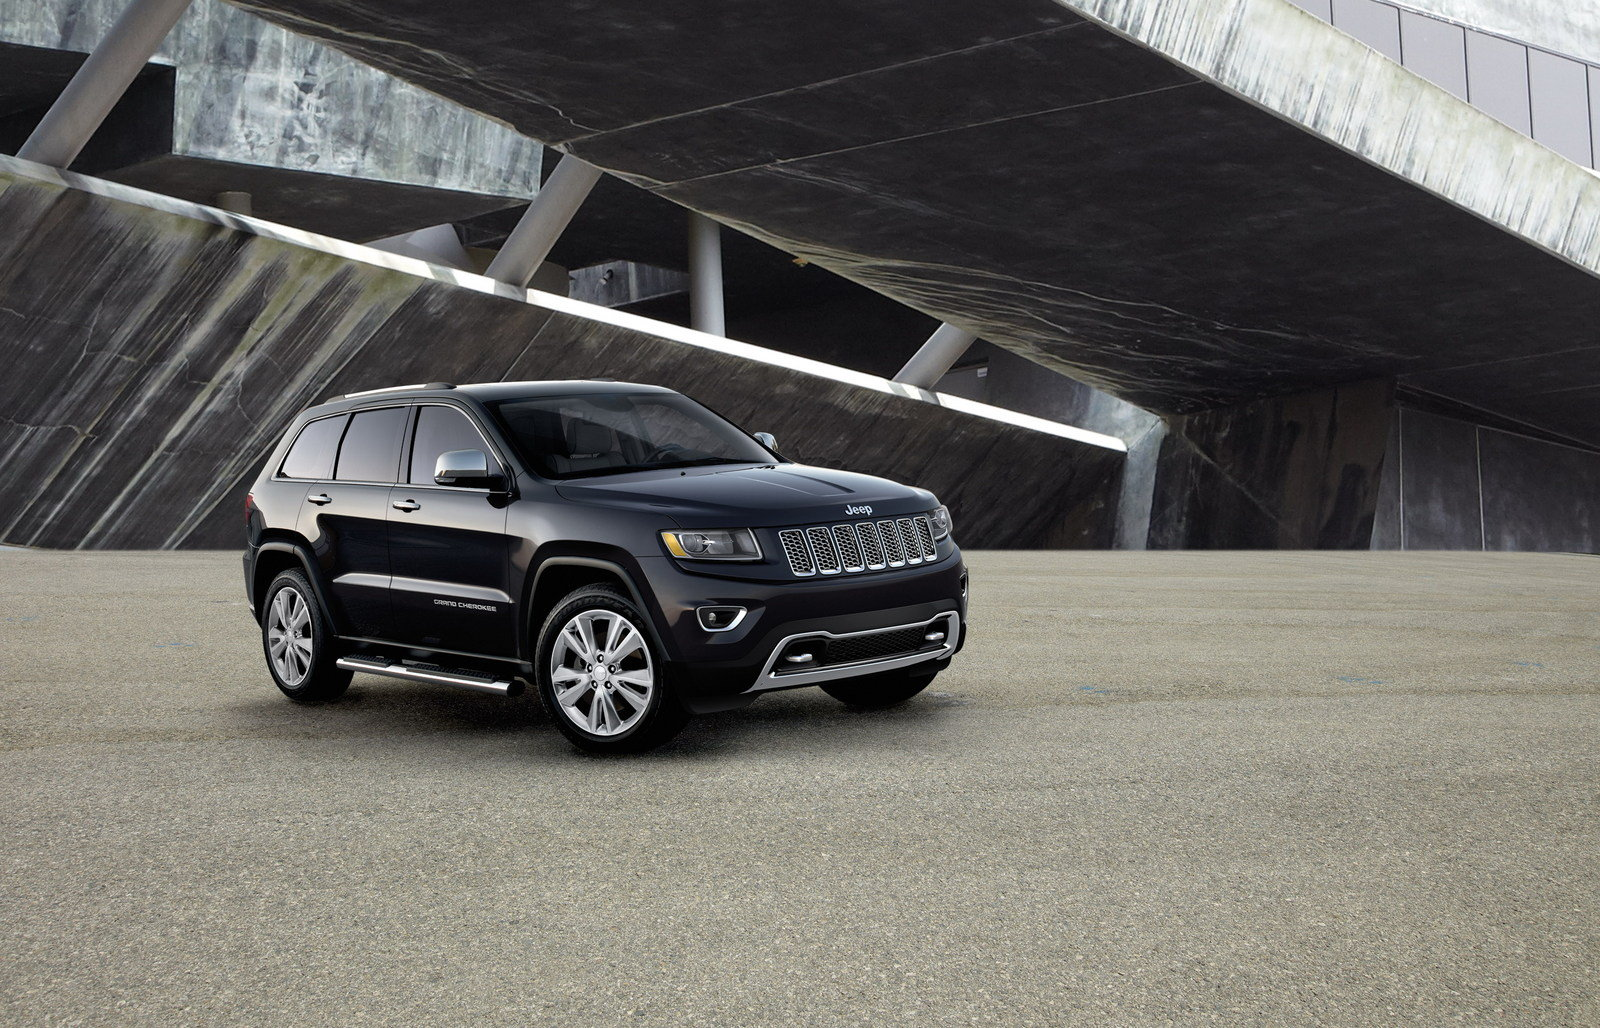 2014 jeep grand cherokee by mopar review top speed. Black Bedroom Furniture Sets. Home Design Ideas